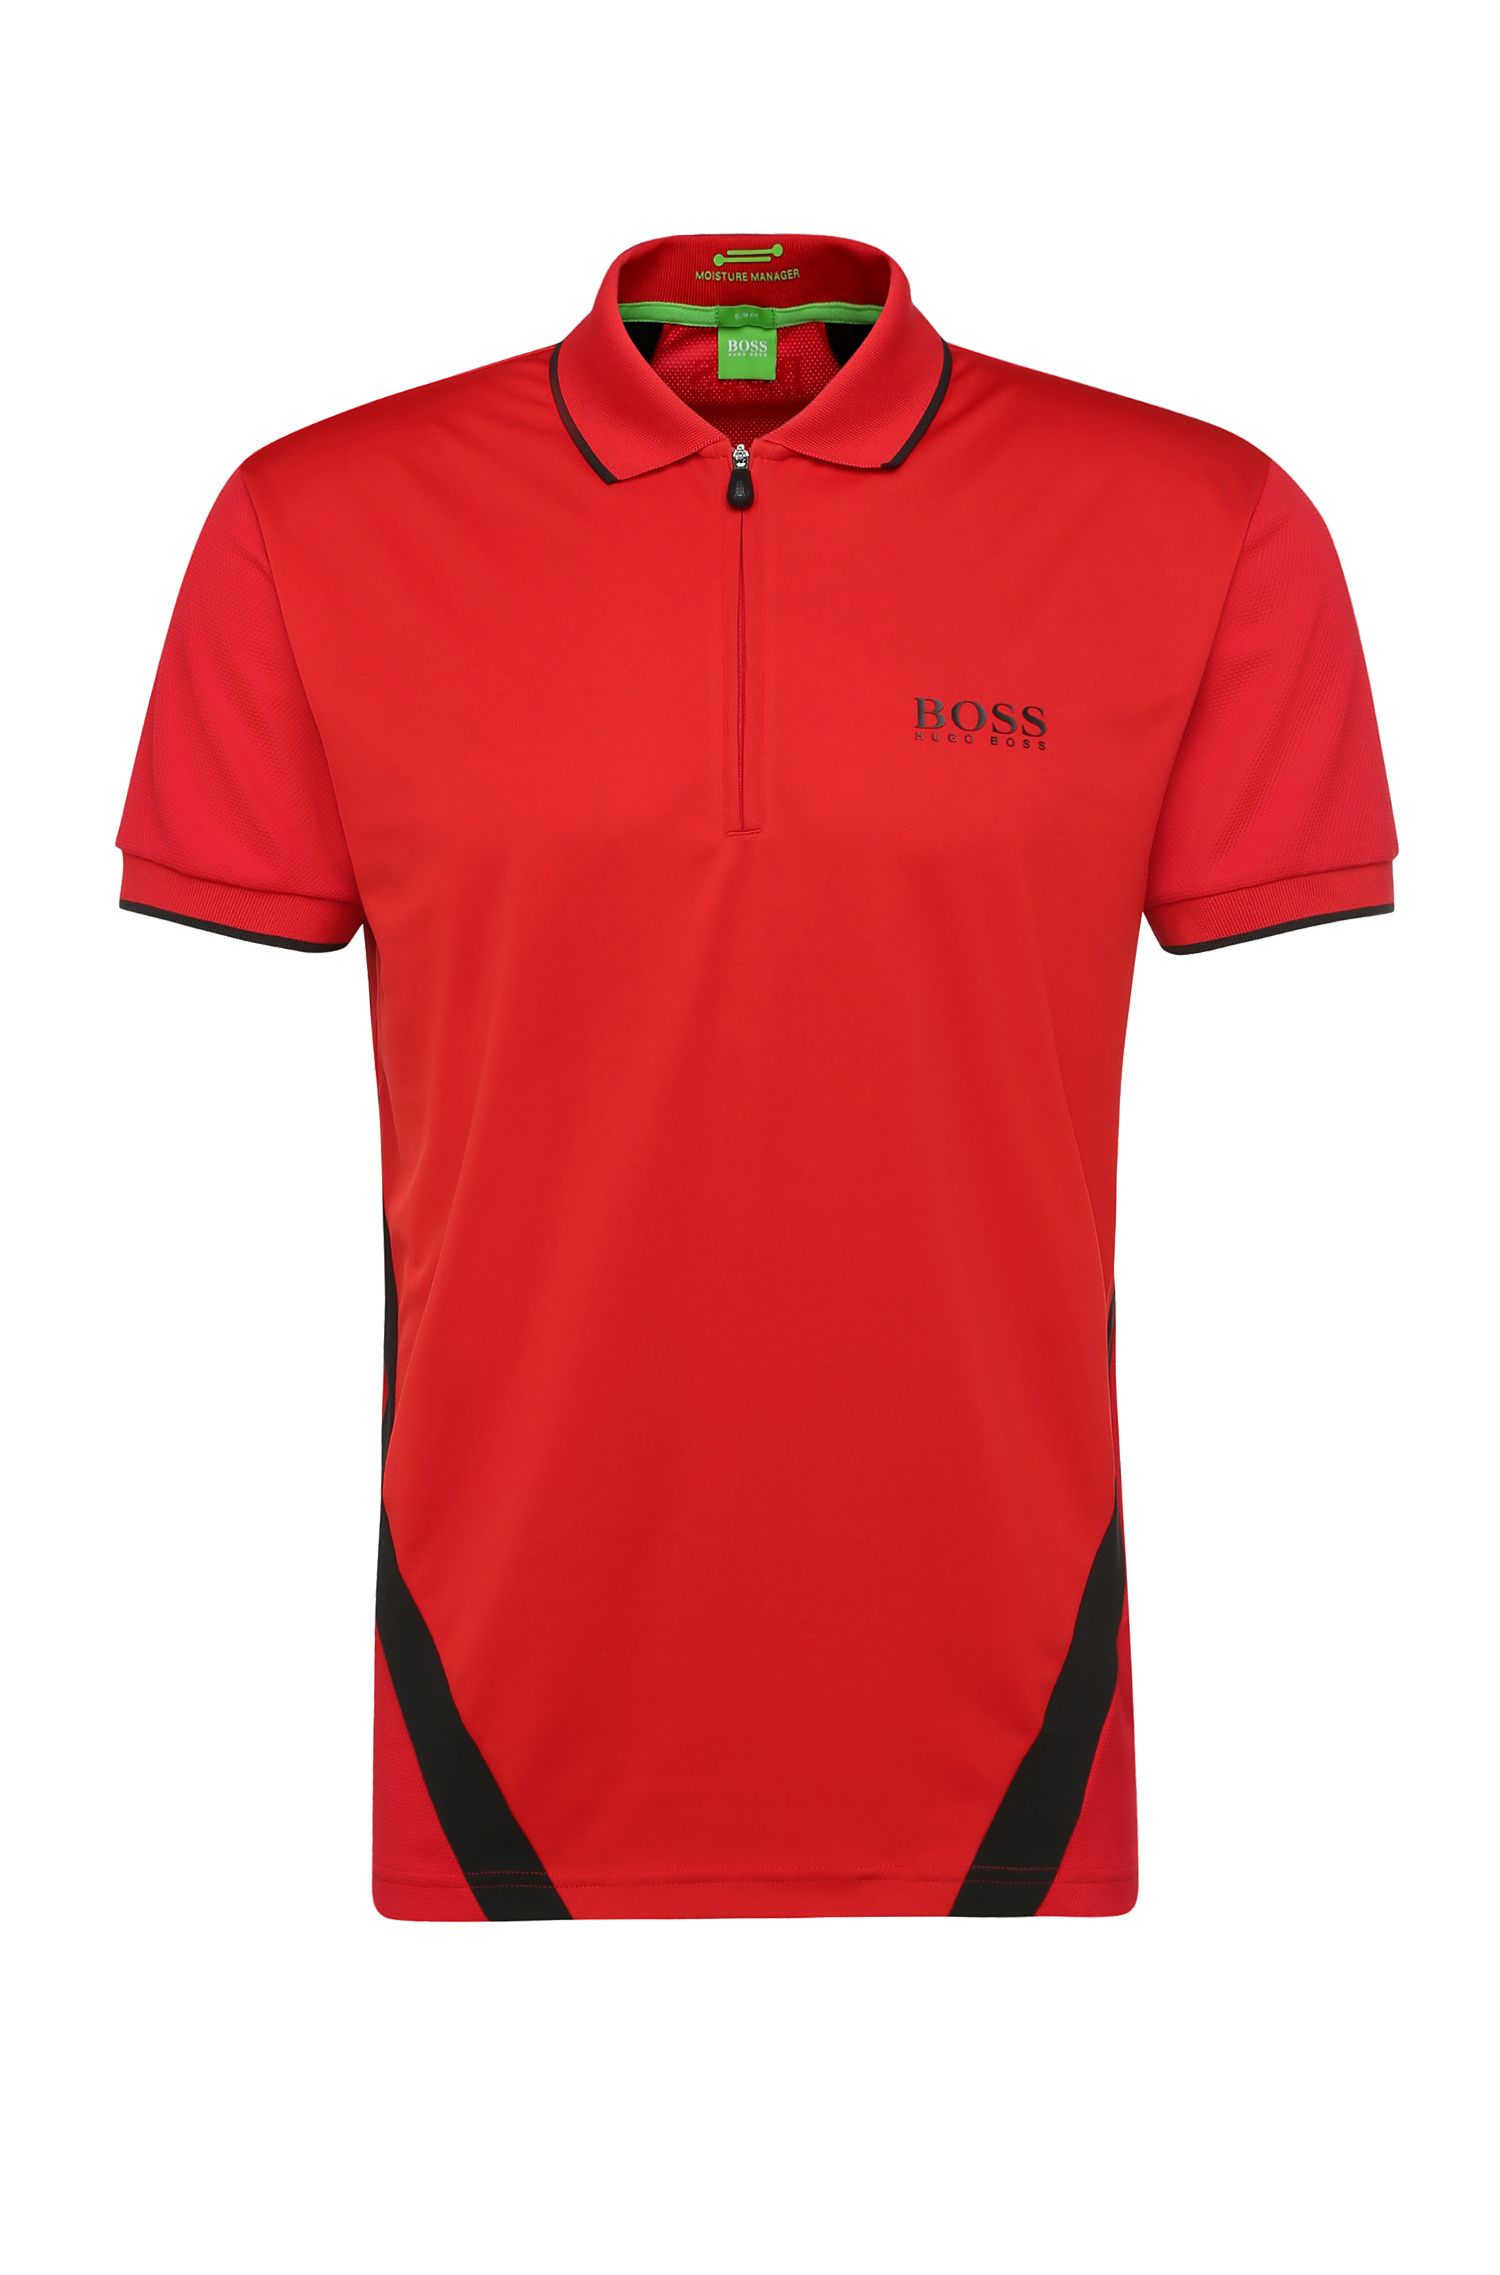 'Perret Pro' | Slim Fit, Stretch Tech Racing Stripe Polo